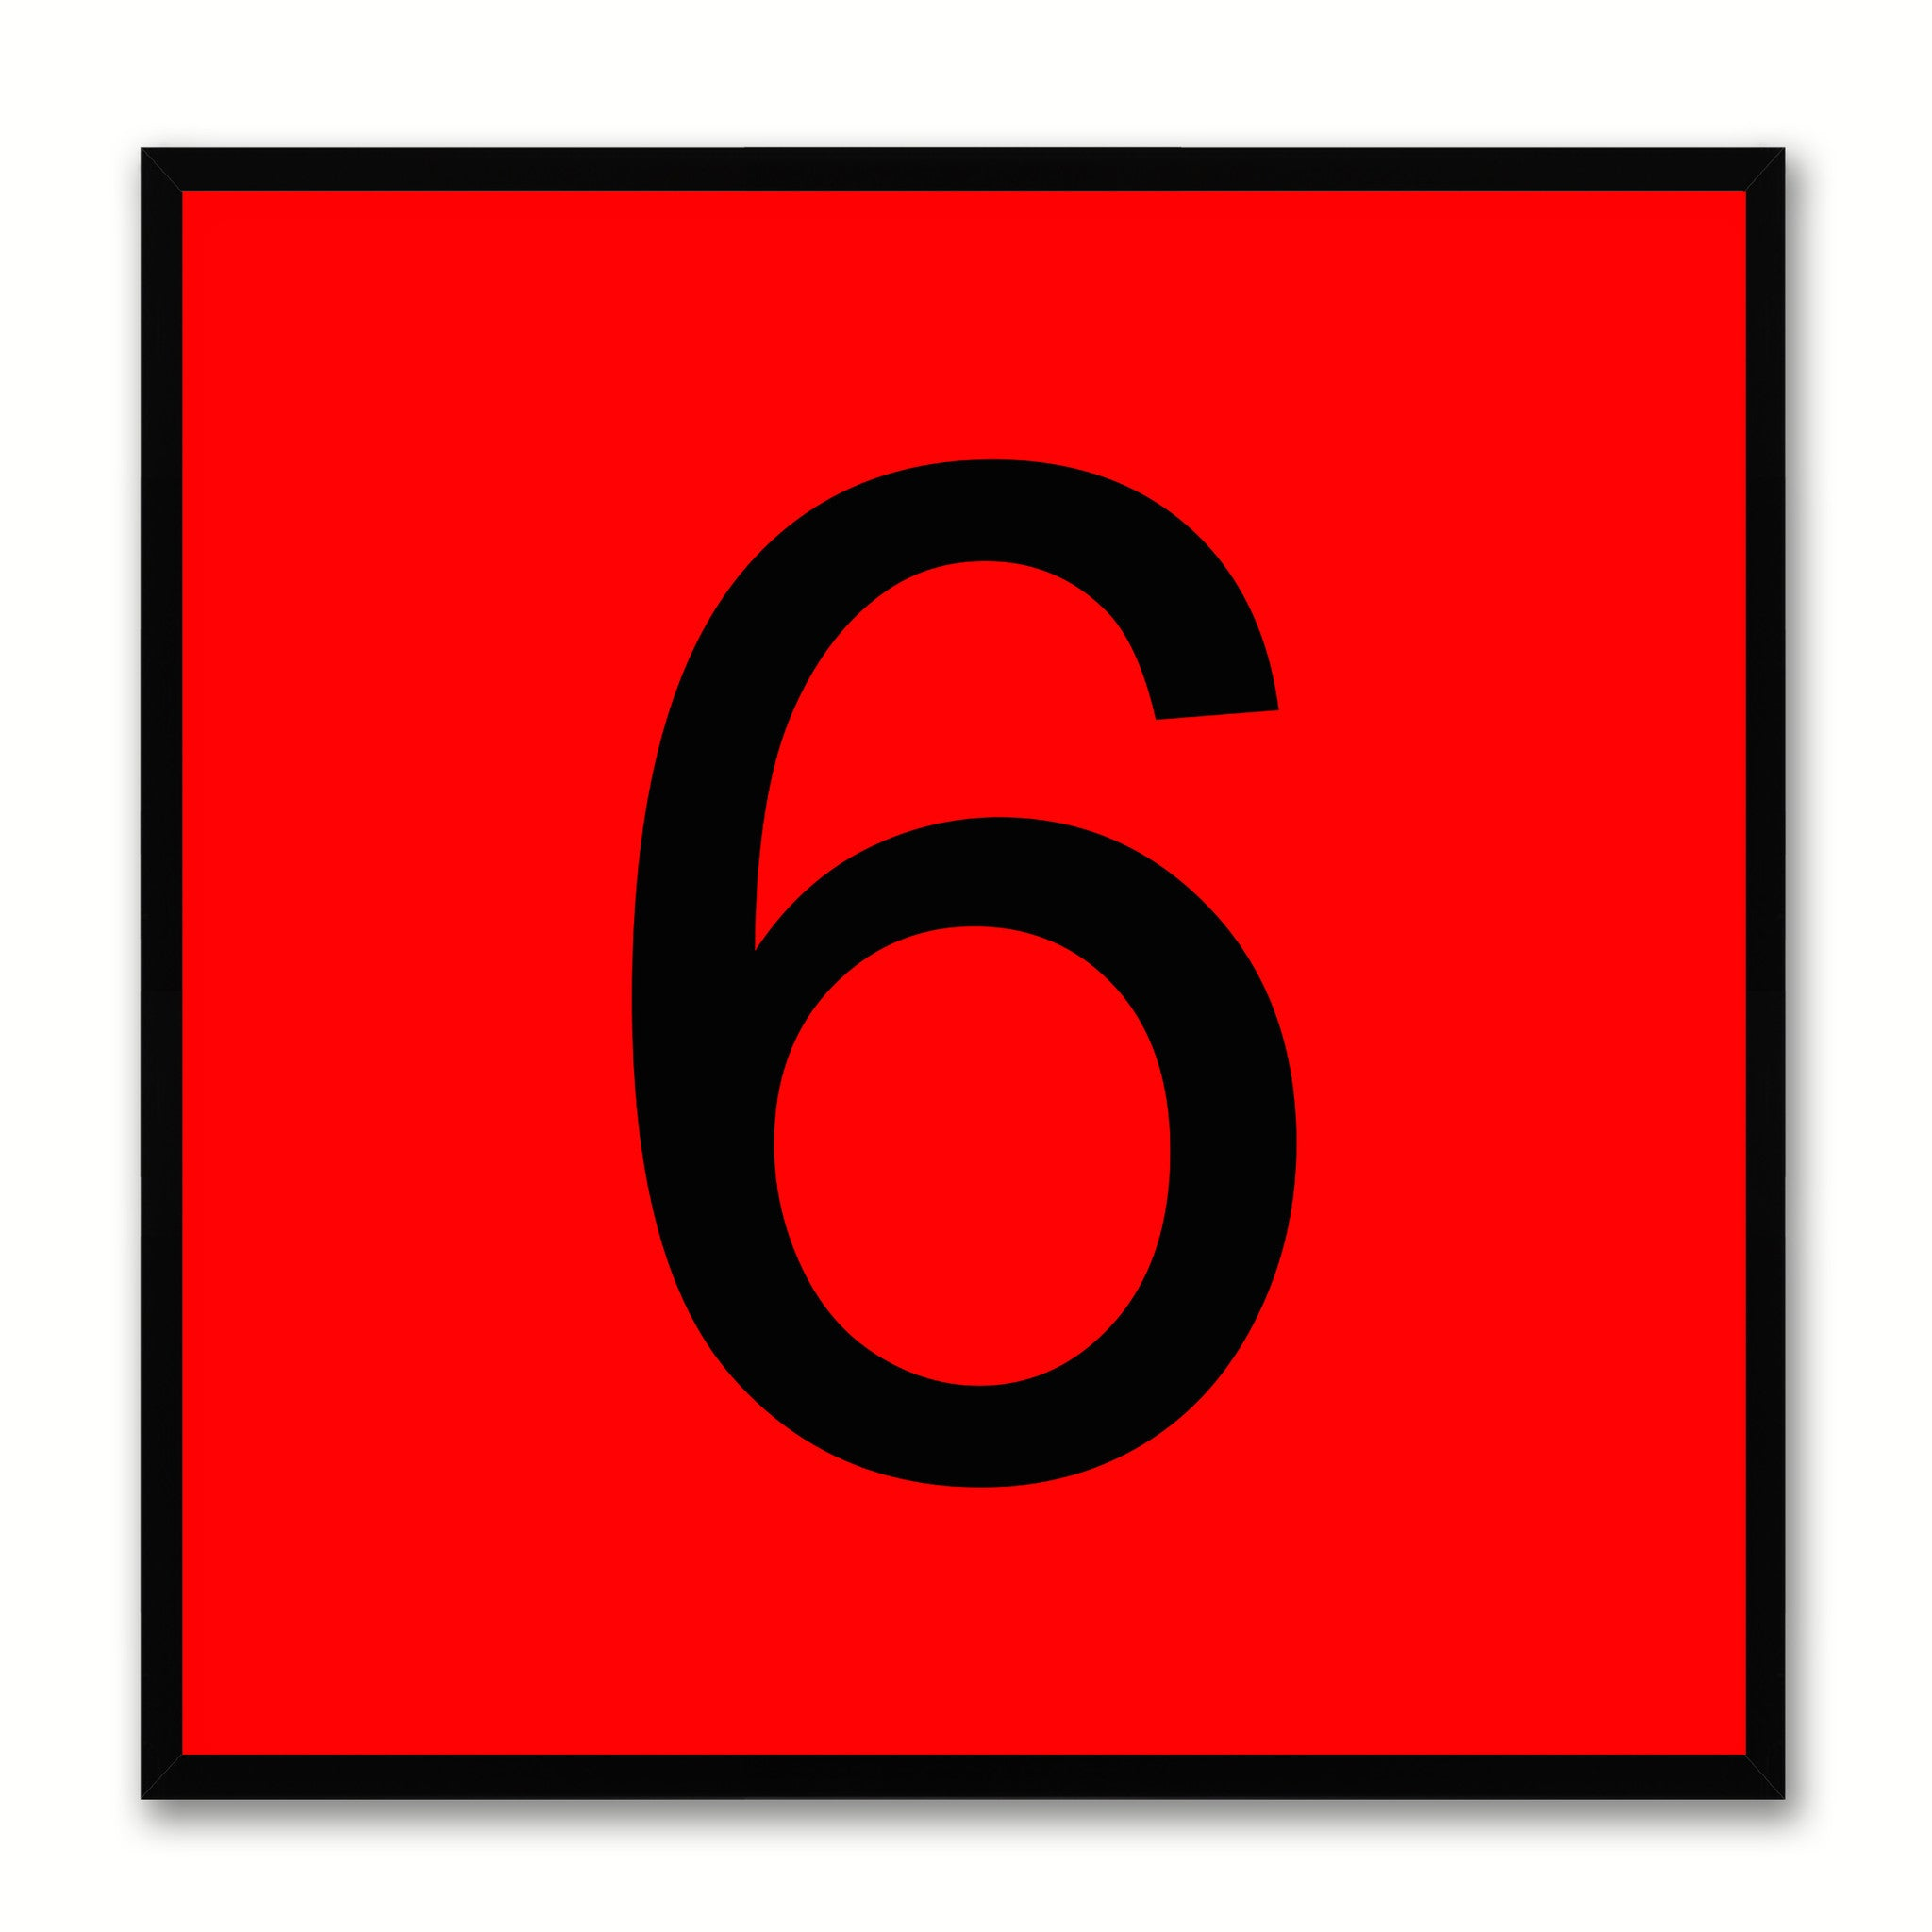 Number 6 Red Canvas Print Black Frame Kids Bedroom Wall Décor Home Art